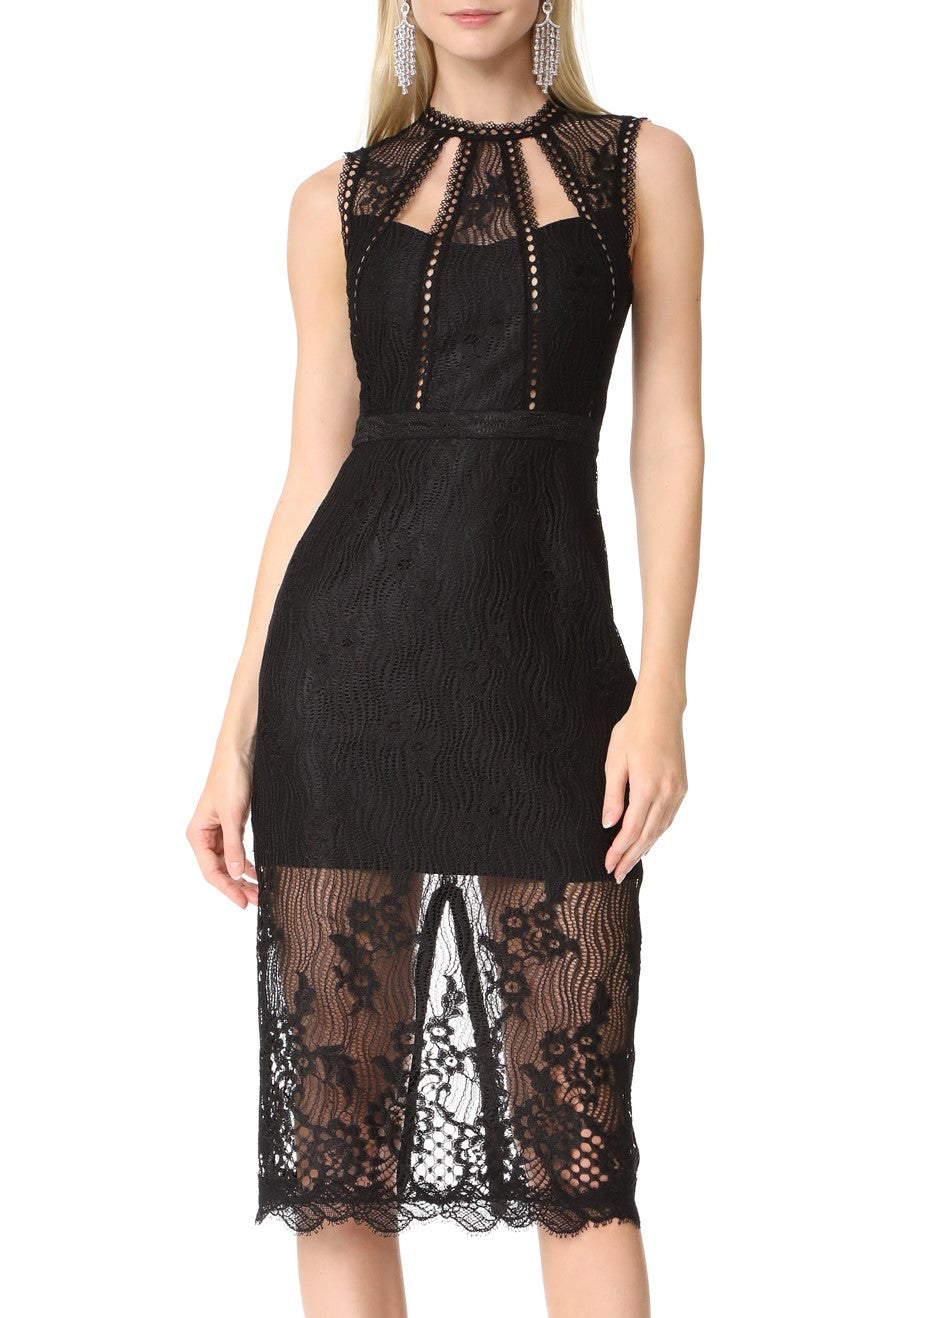 Alexis oralie dress black